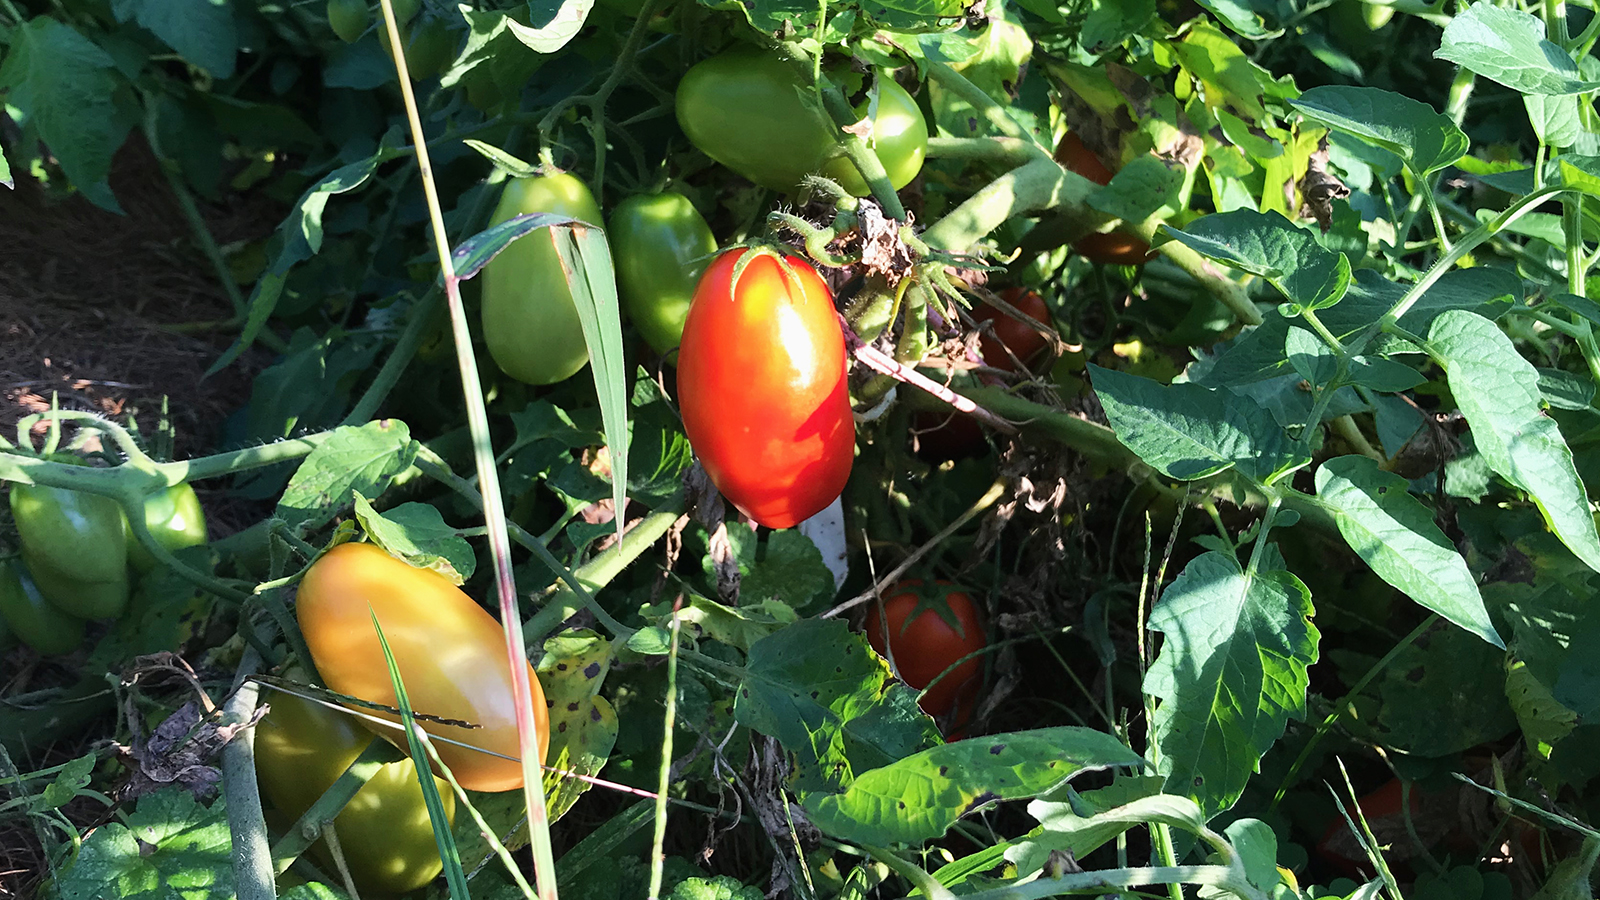 Juliete tomatoes on the vine; photo by Jason Velázquez